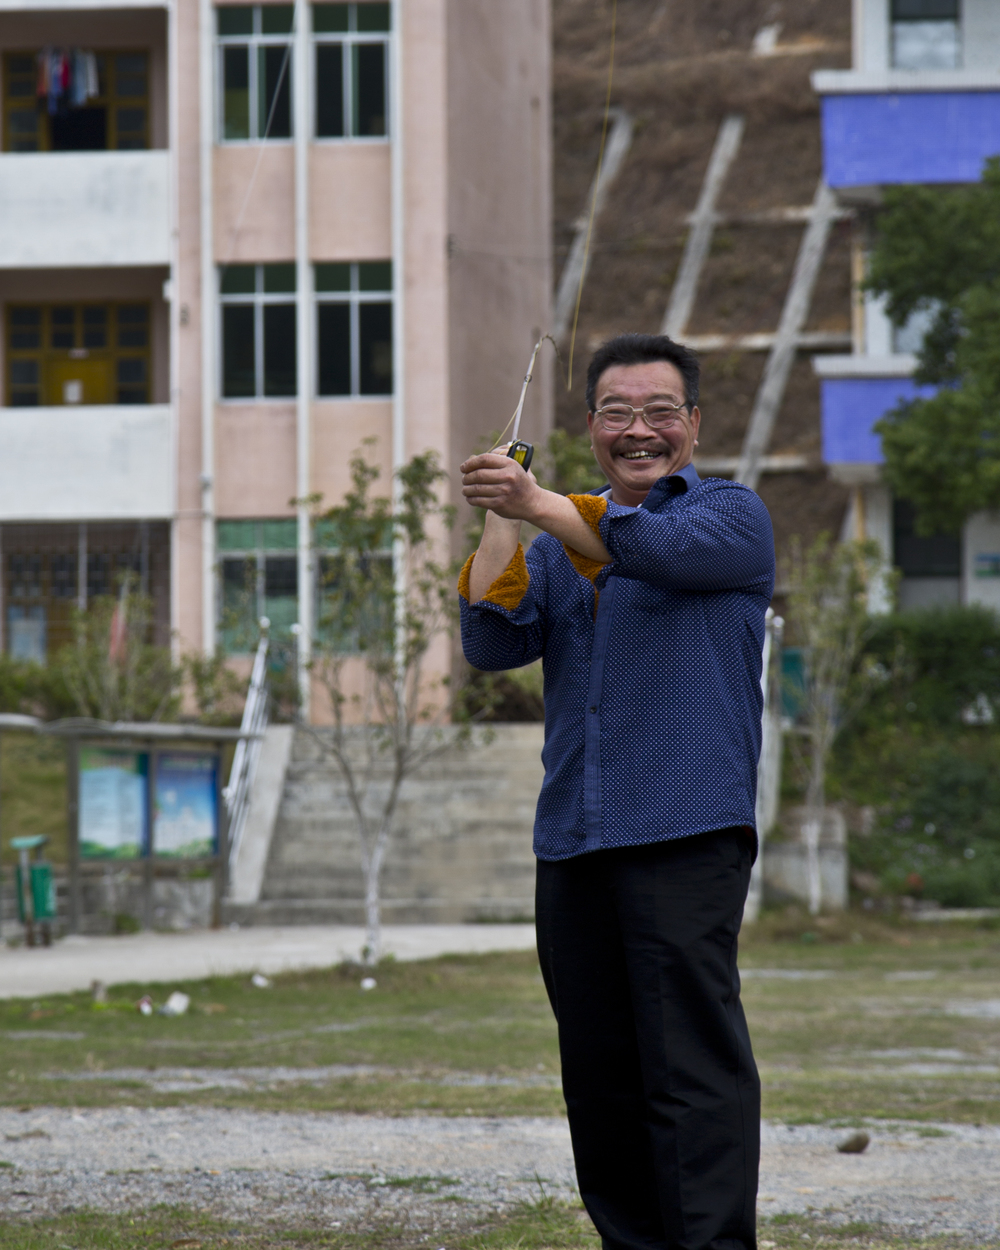 Lao Cai practicing the art of bamboo rod fly casting in the middle school playground across from his home.